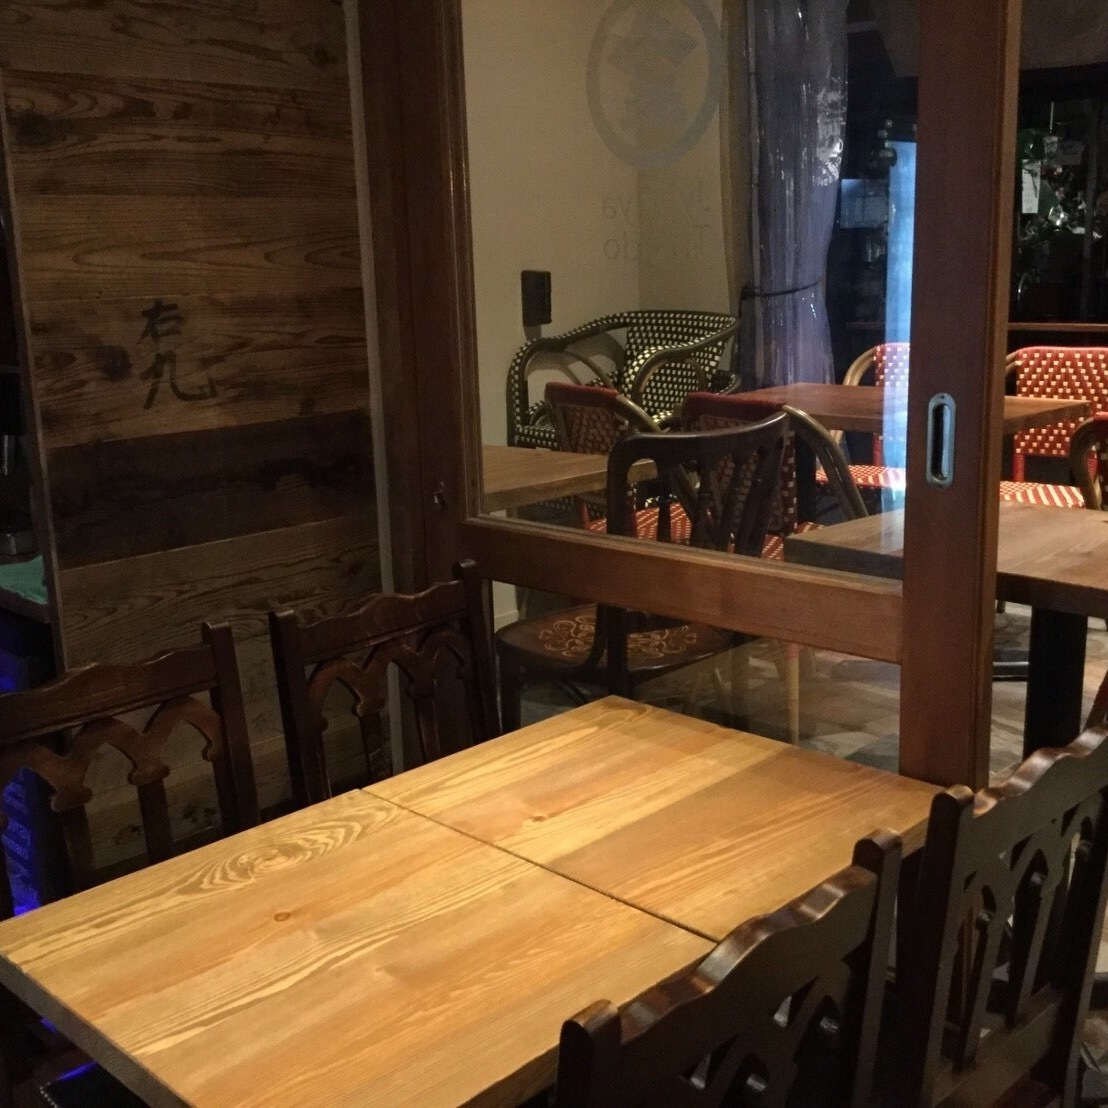 Both the inside of the store and outside the store are made with warmth as the main wood.Private, girls' association, birthday party, company banquet, alumni association, charter etc. You can use according to your scene.